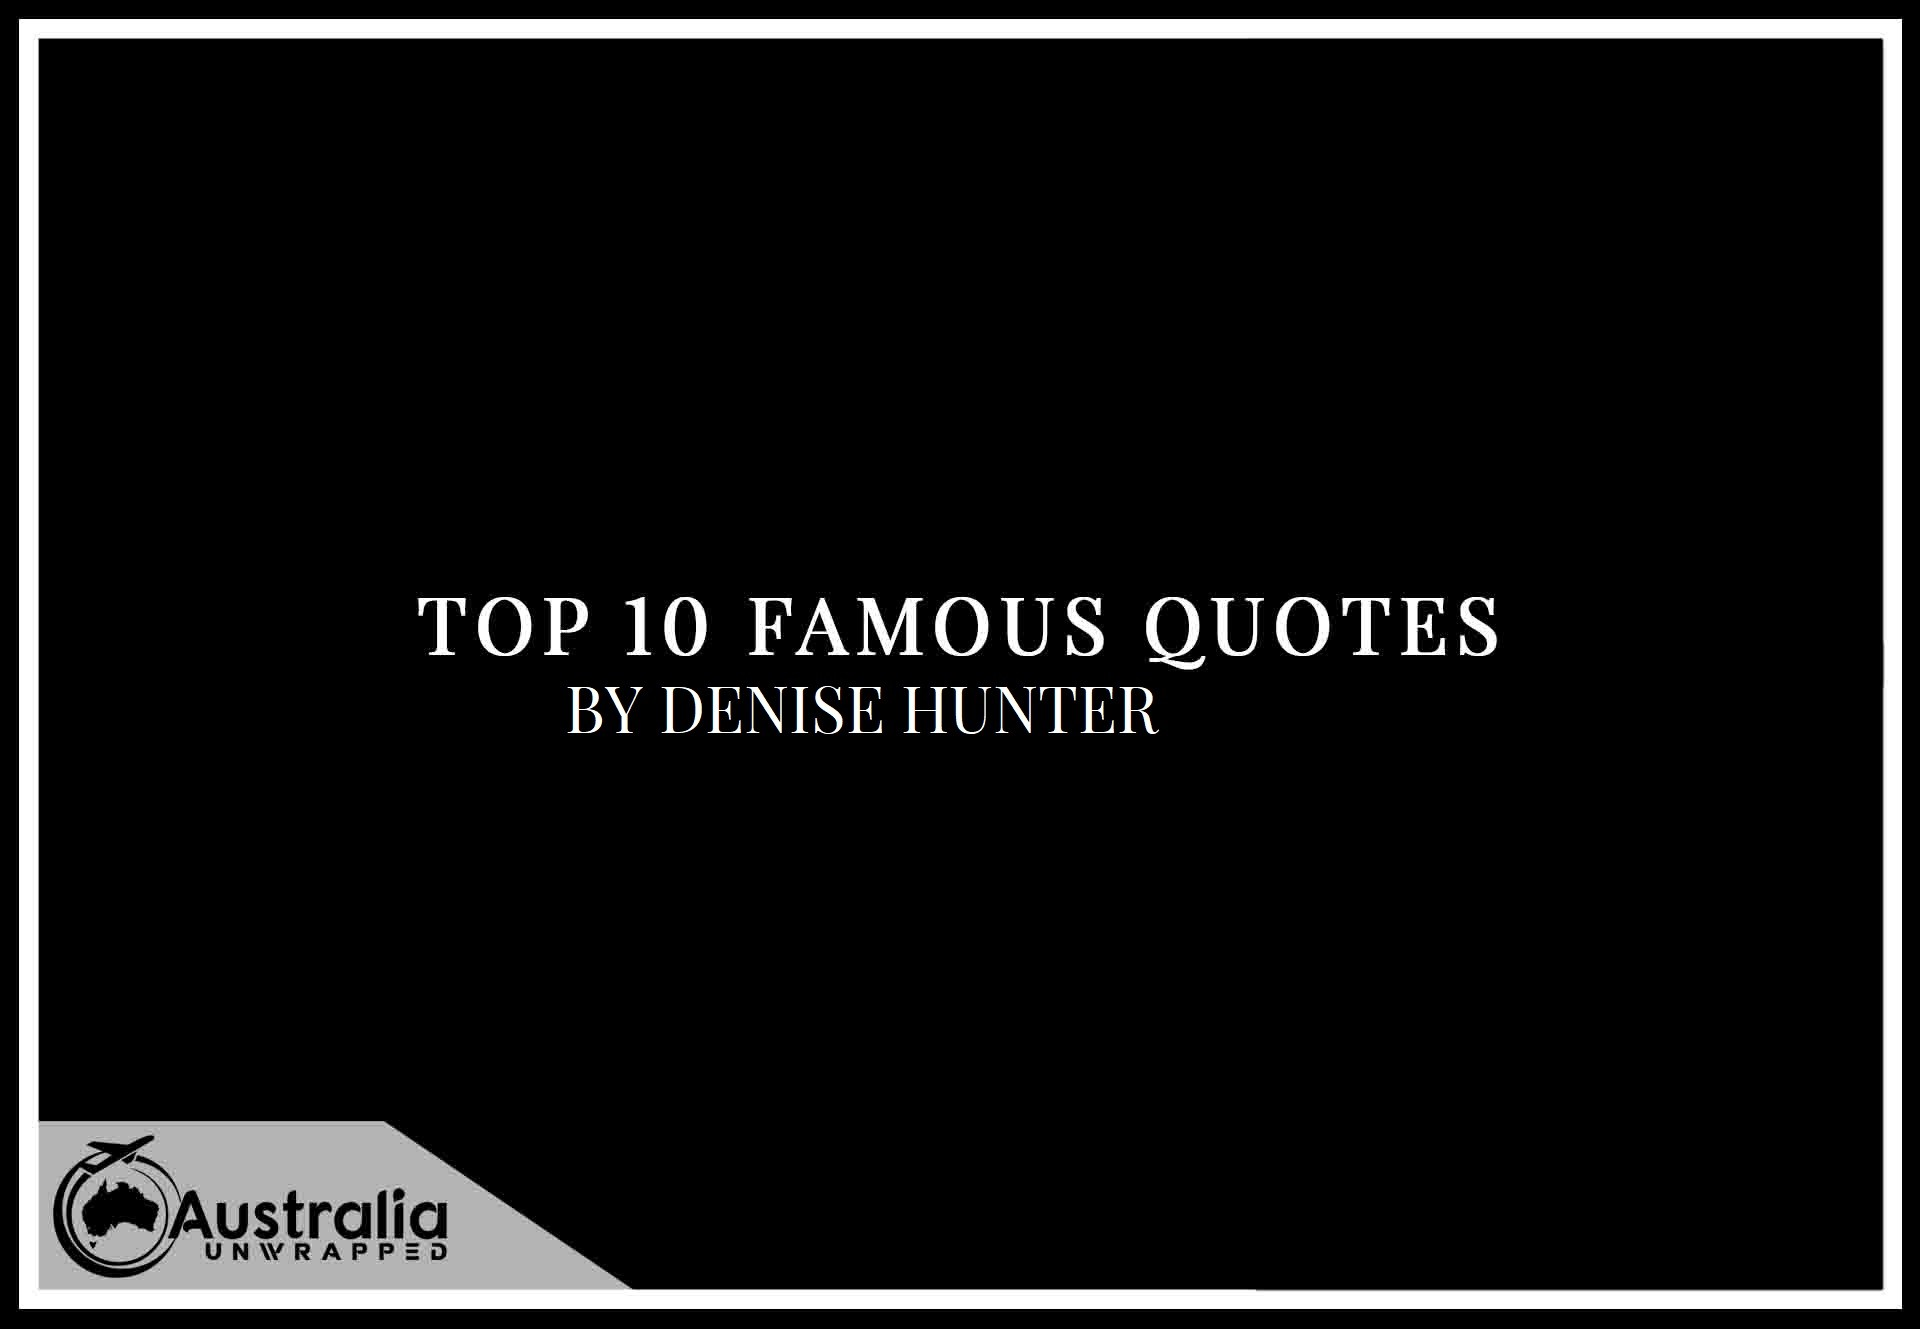 Top 10 Famous Quotes by Author Denise Hunter